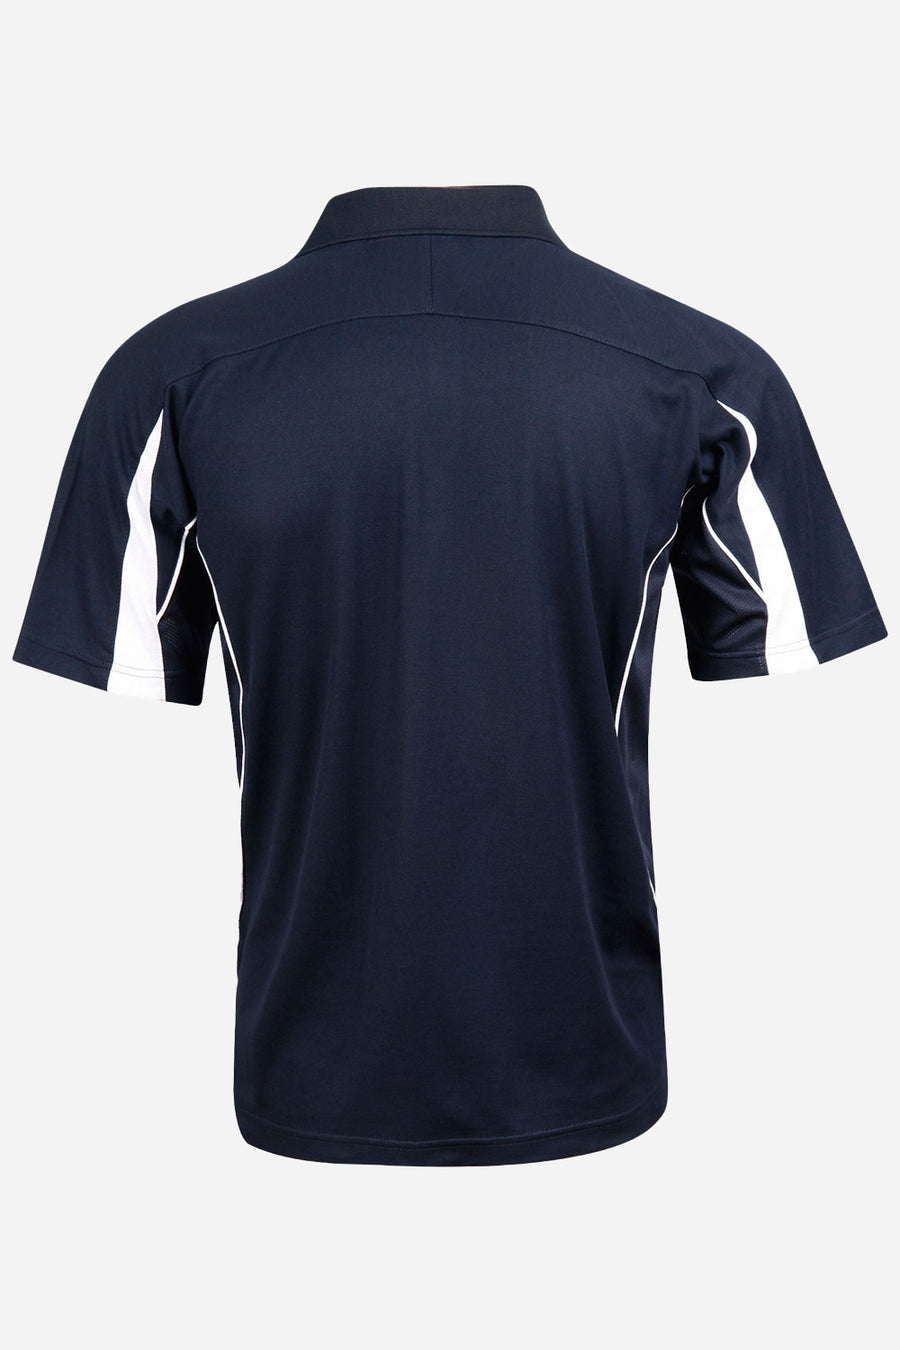 Food & Nutrition Science men's polo